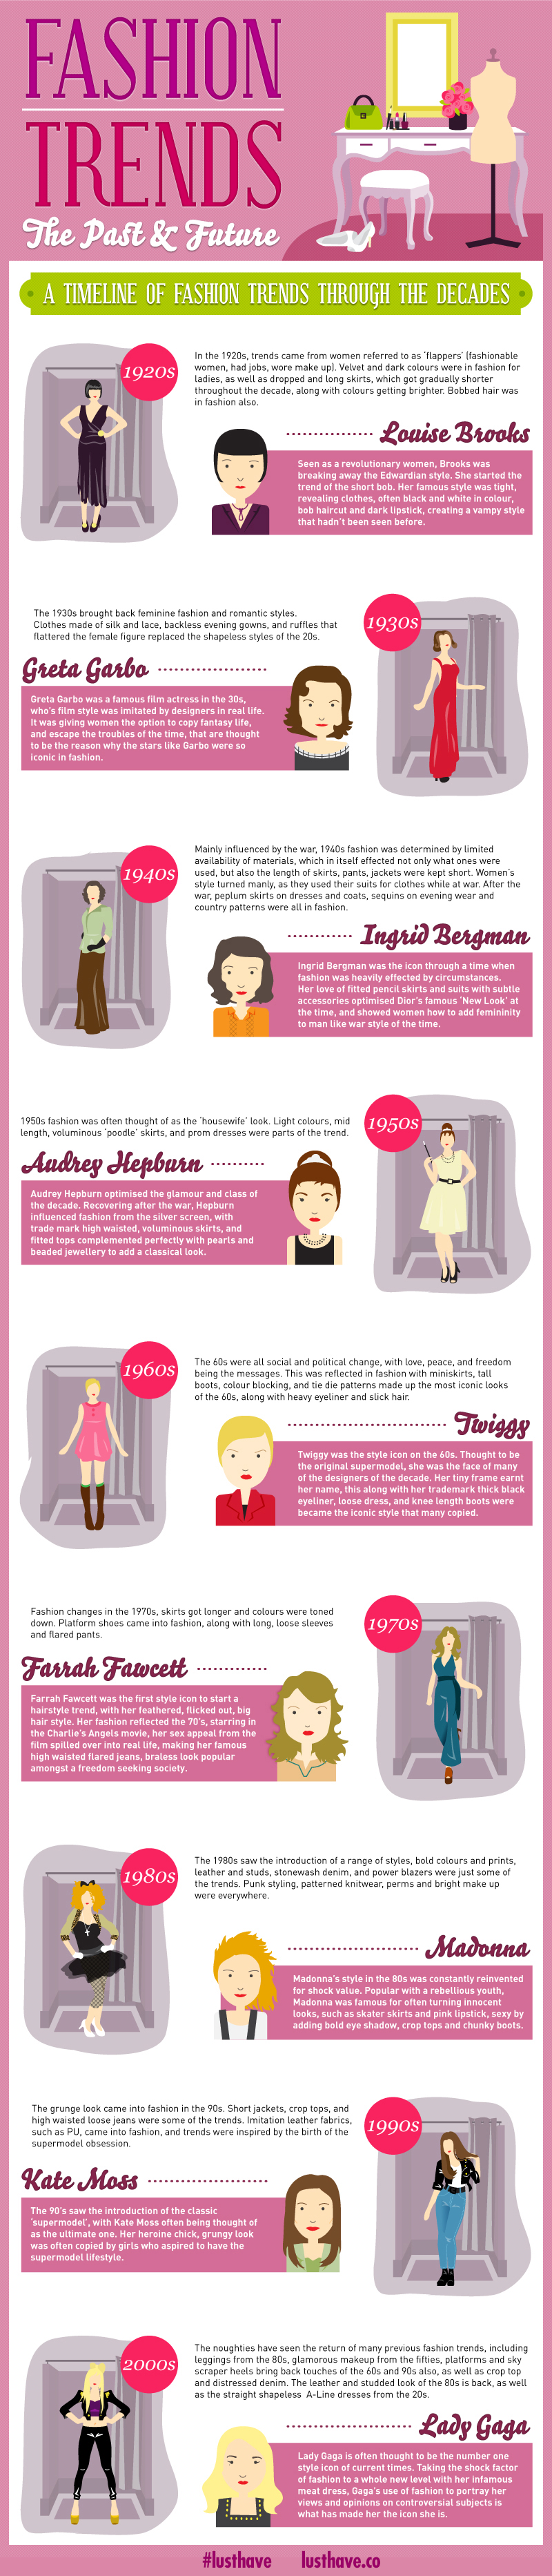 Trends fashion infographic lusthave fashion infographics